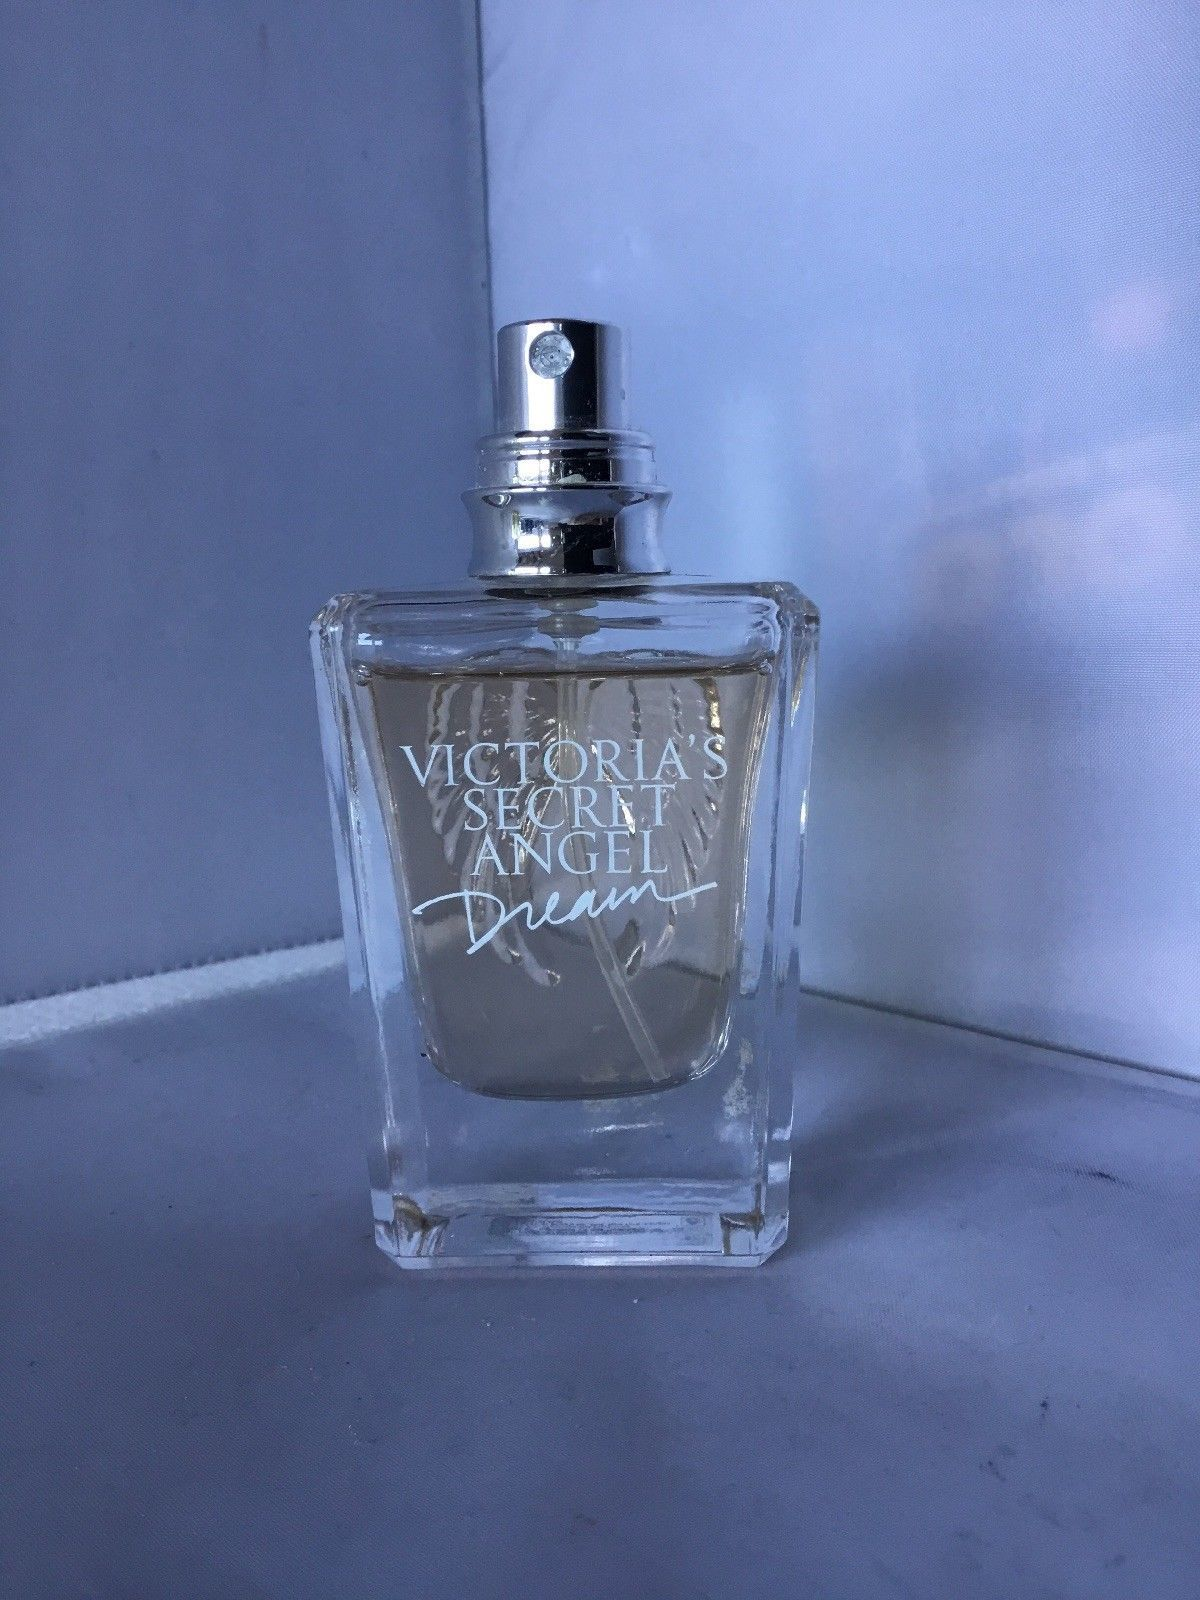 Primary image for Victoria's Secret Angel DREAM 1oz EAU DE PARFUM Perfume WOMEN Full L01